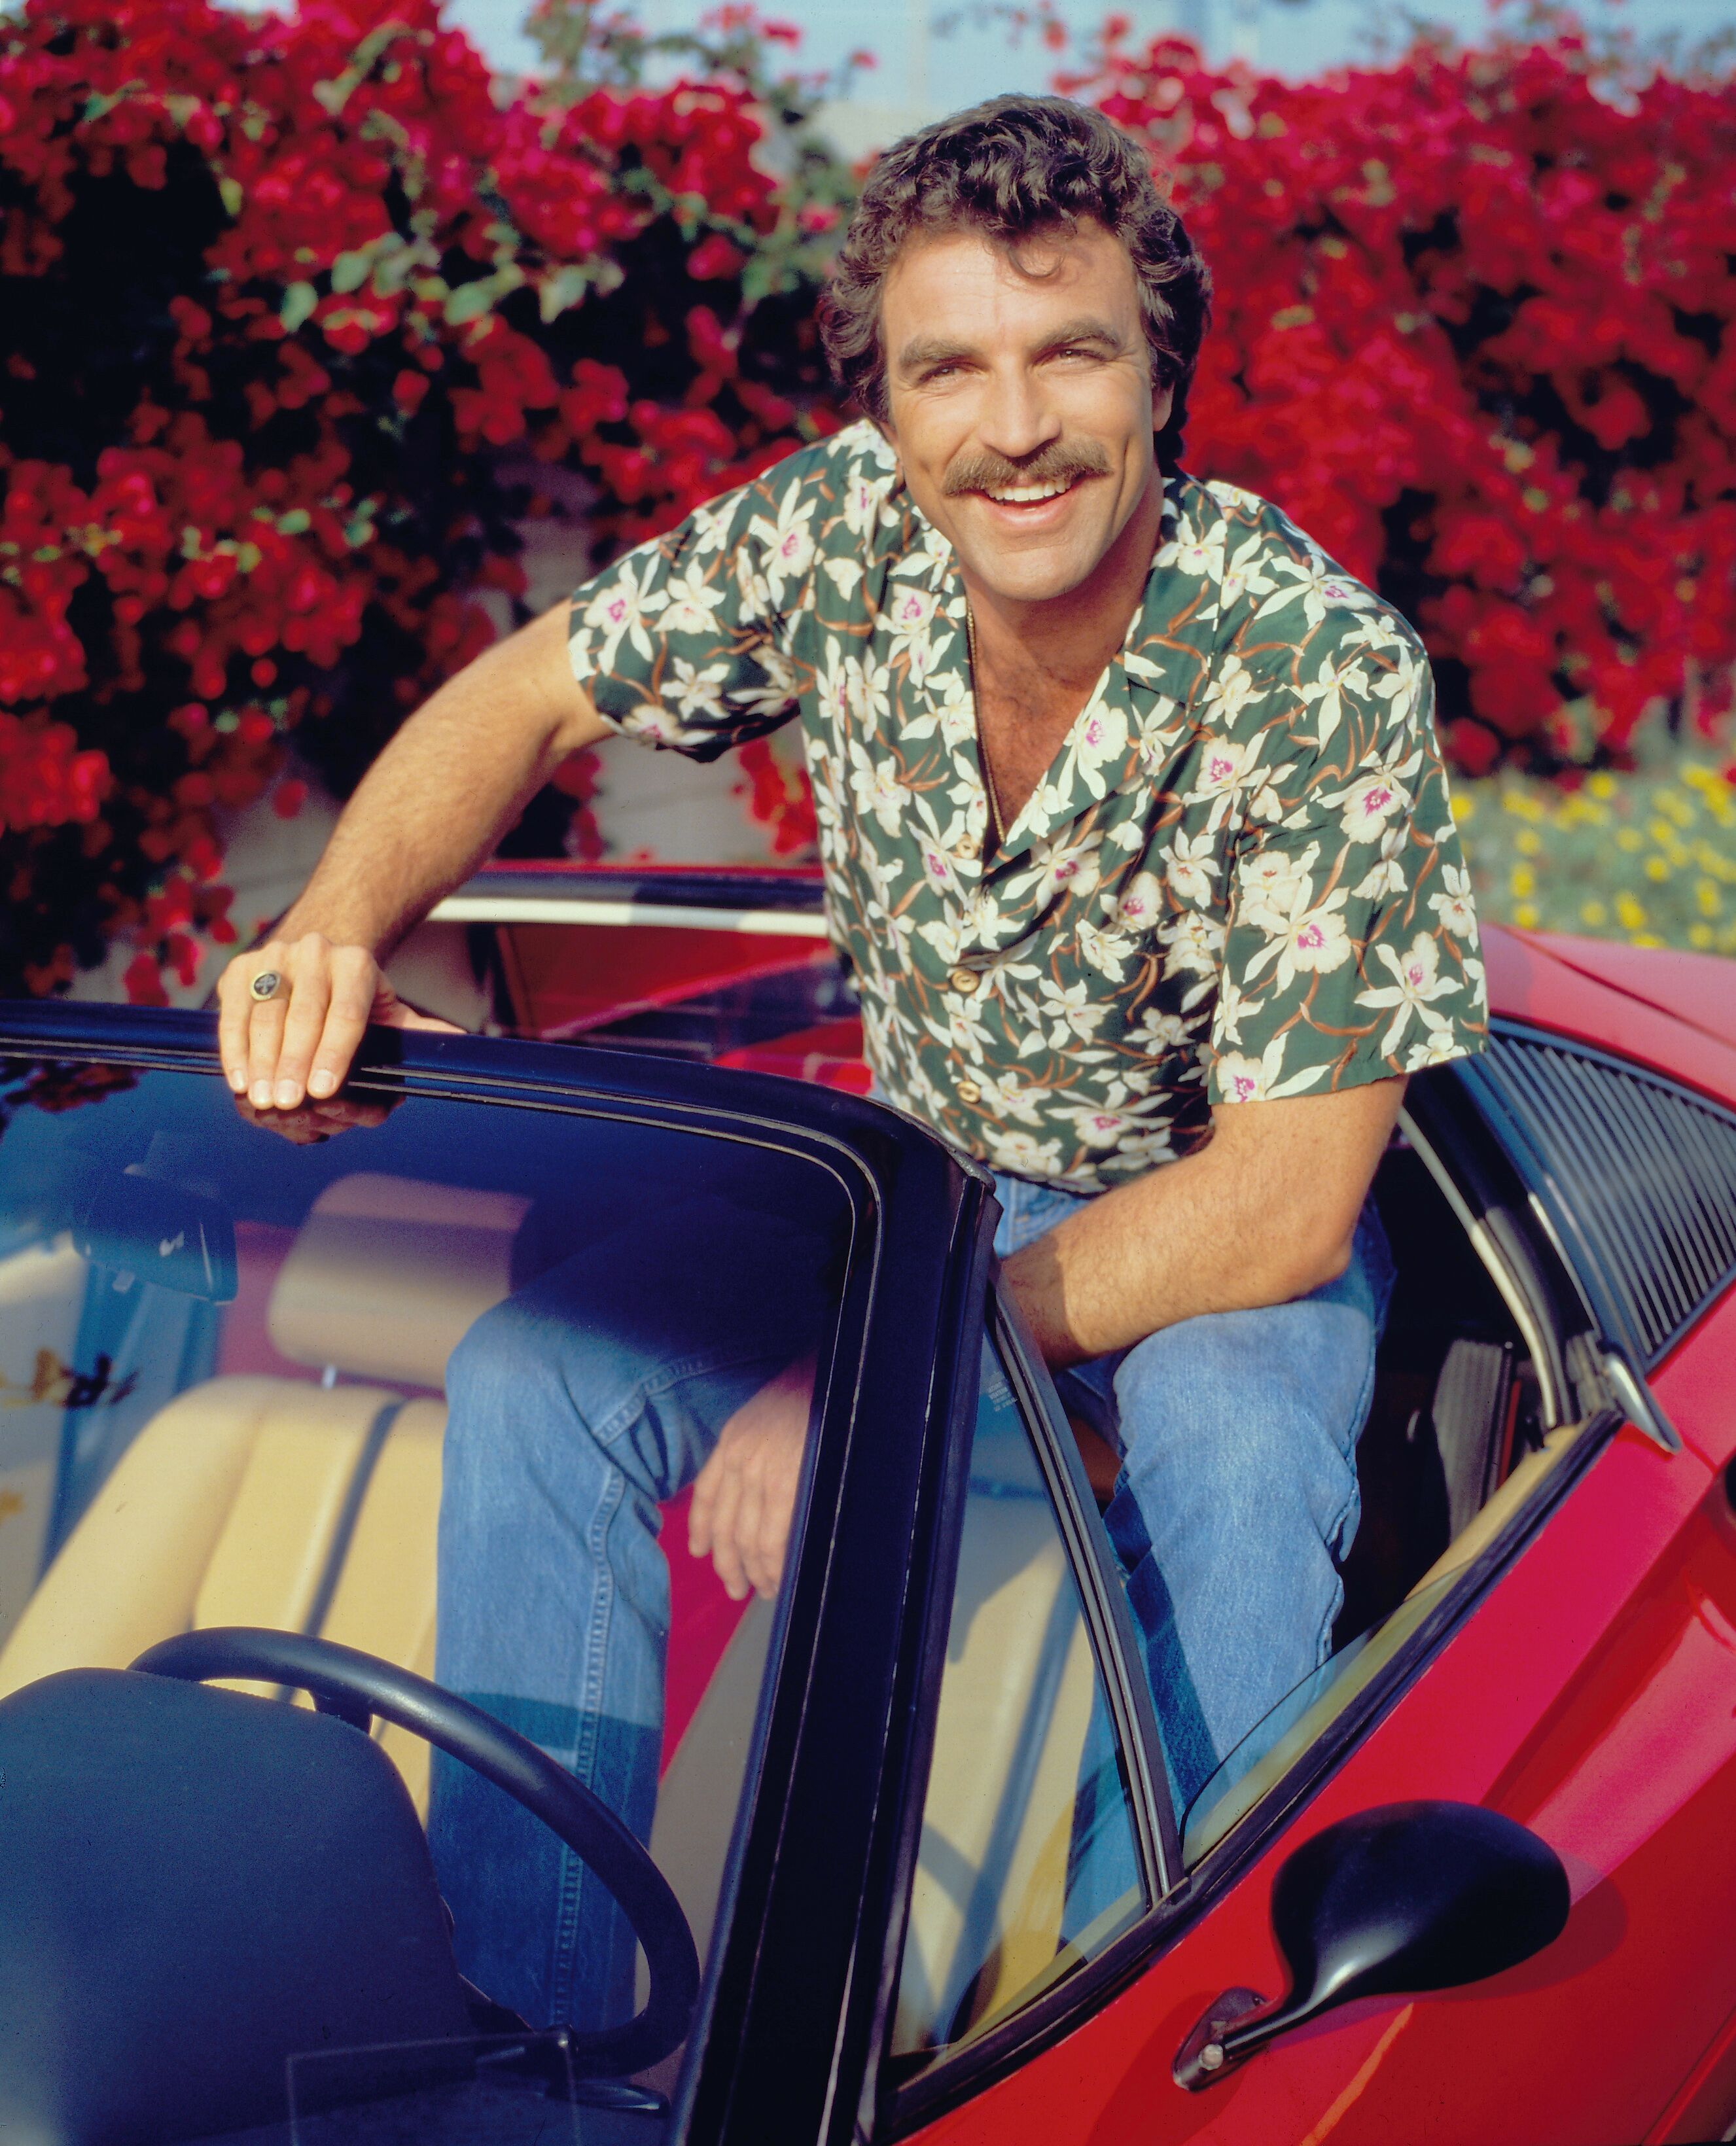 """Tom Selleck as Thomas Magnum in """"Magnum P.I."""" circa 1981 